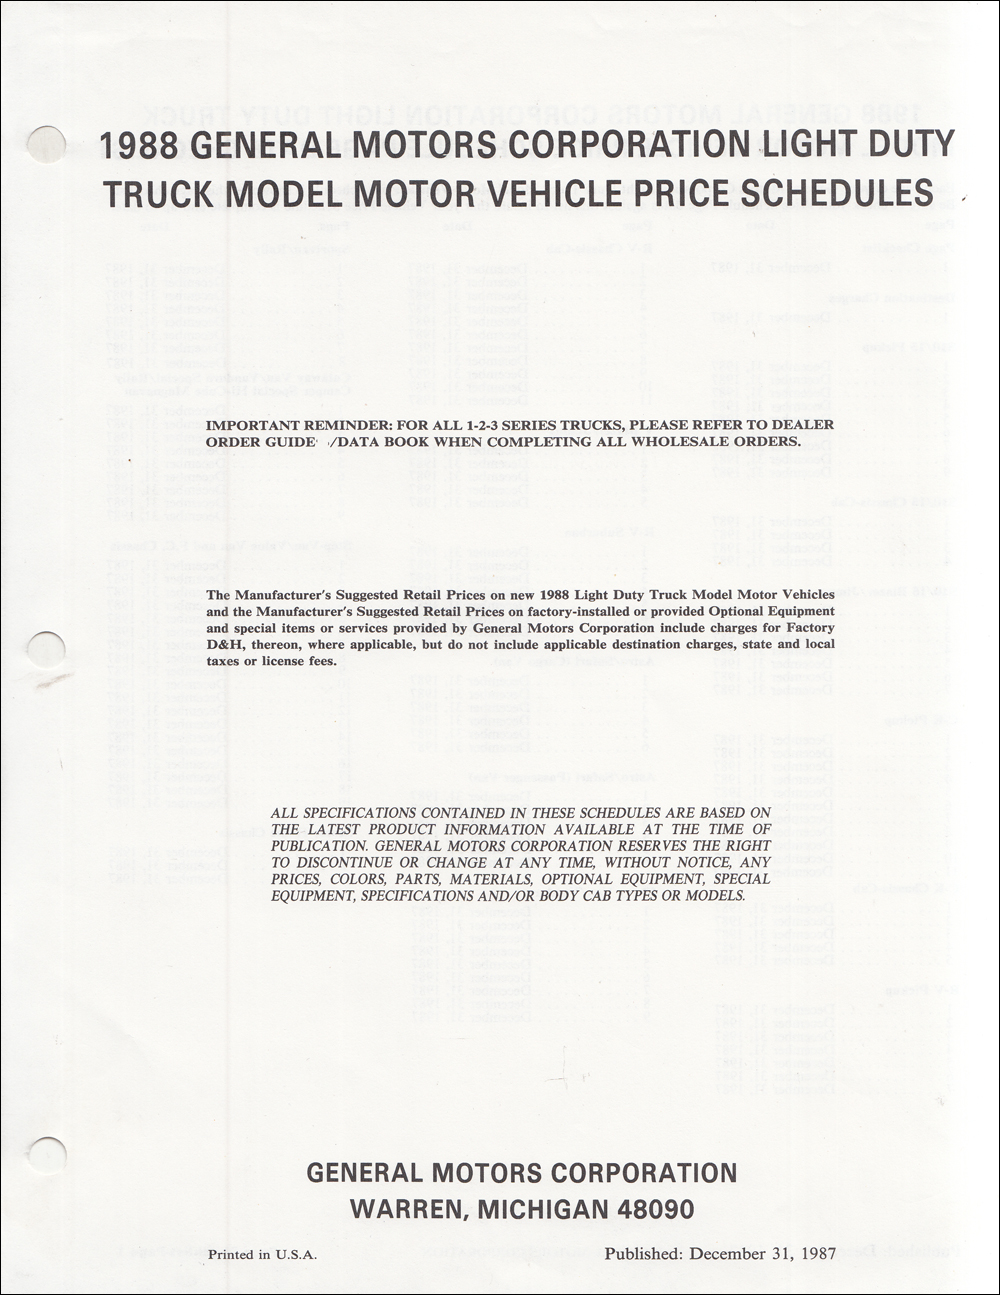 1988 Chevrolet Truck Price Schedule Dealer Album Original